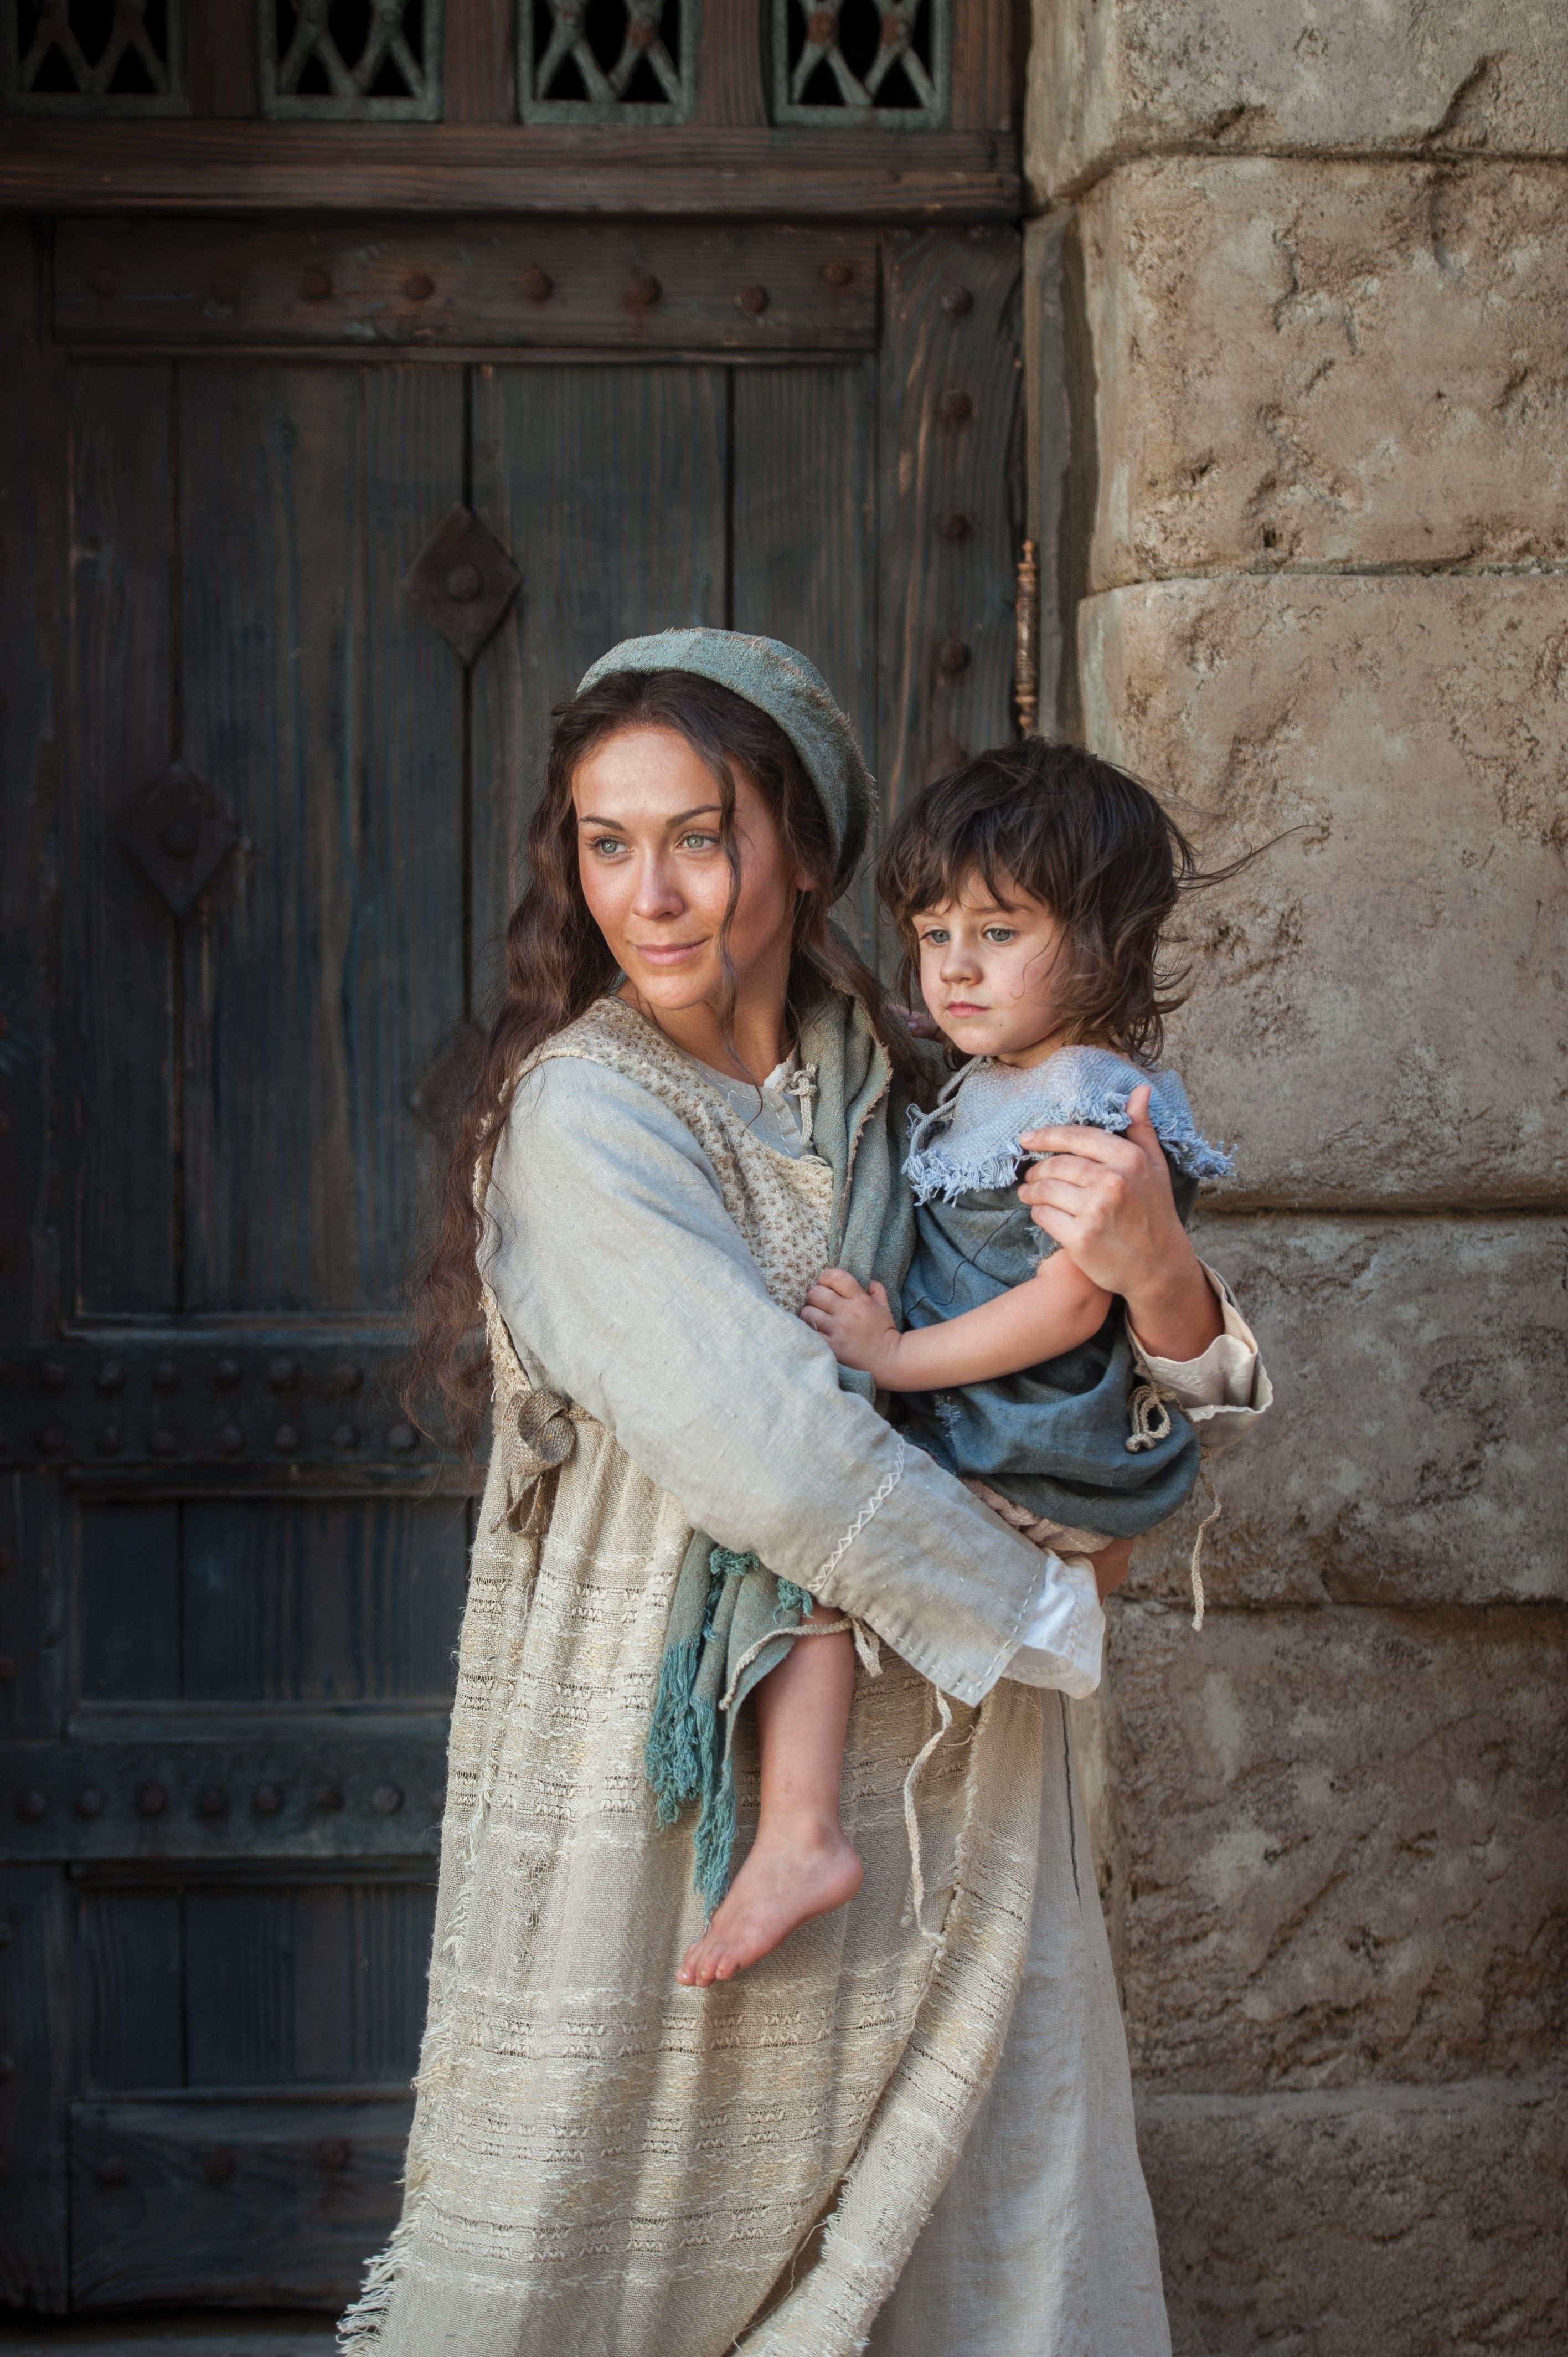 A portrait of Mary and the young Christ child at the time the Wise Men brought gifts.